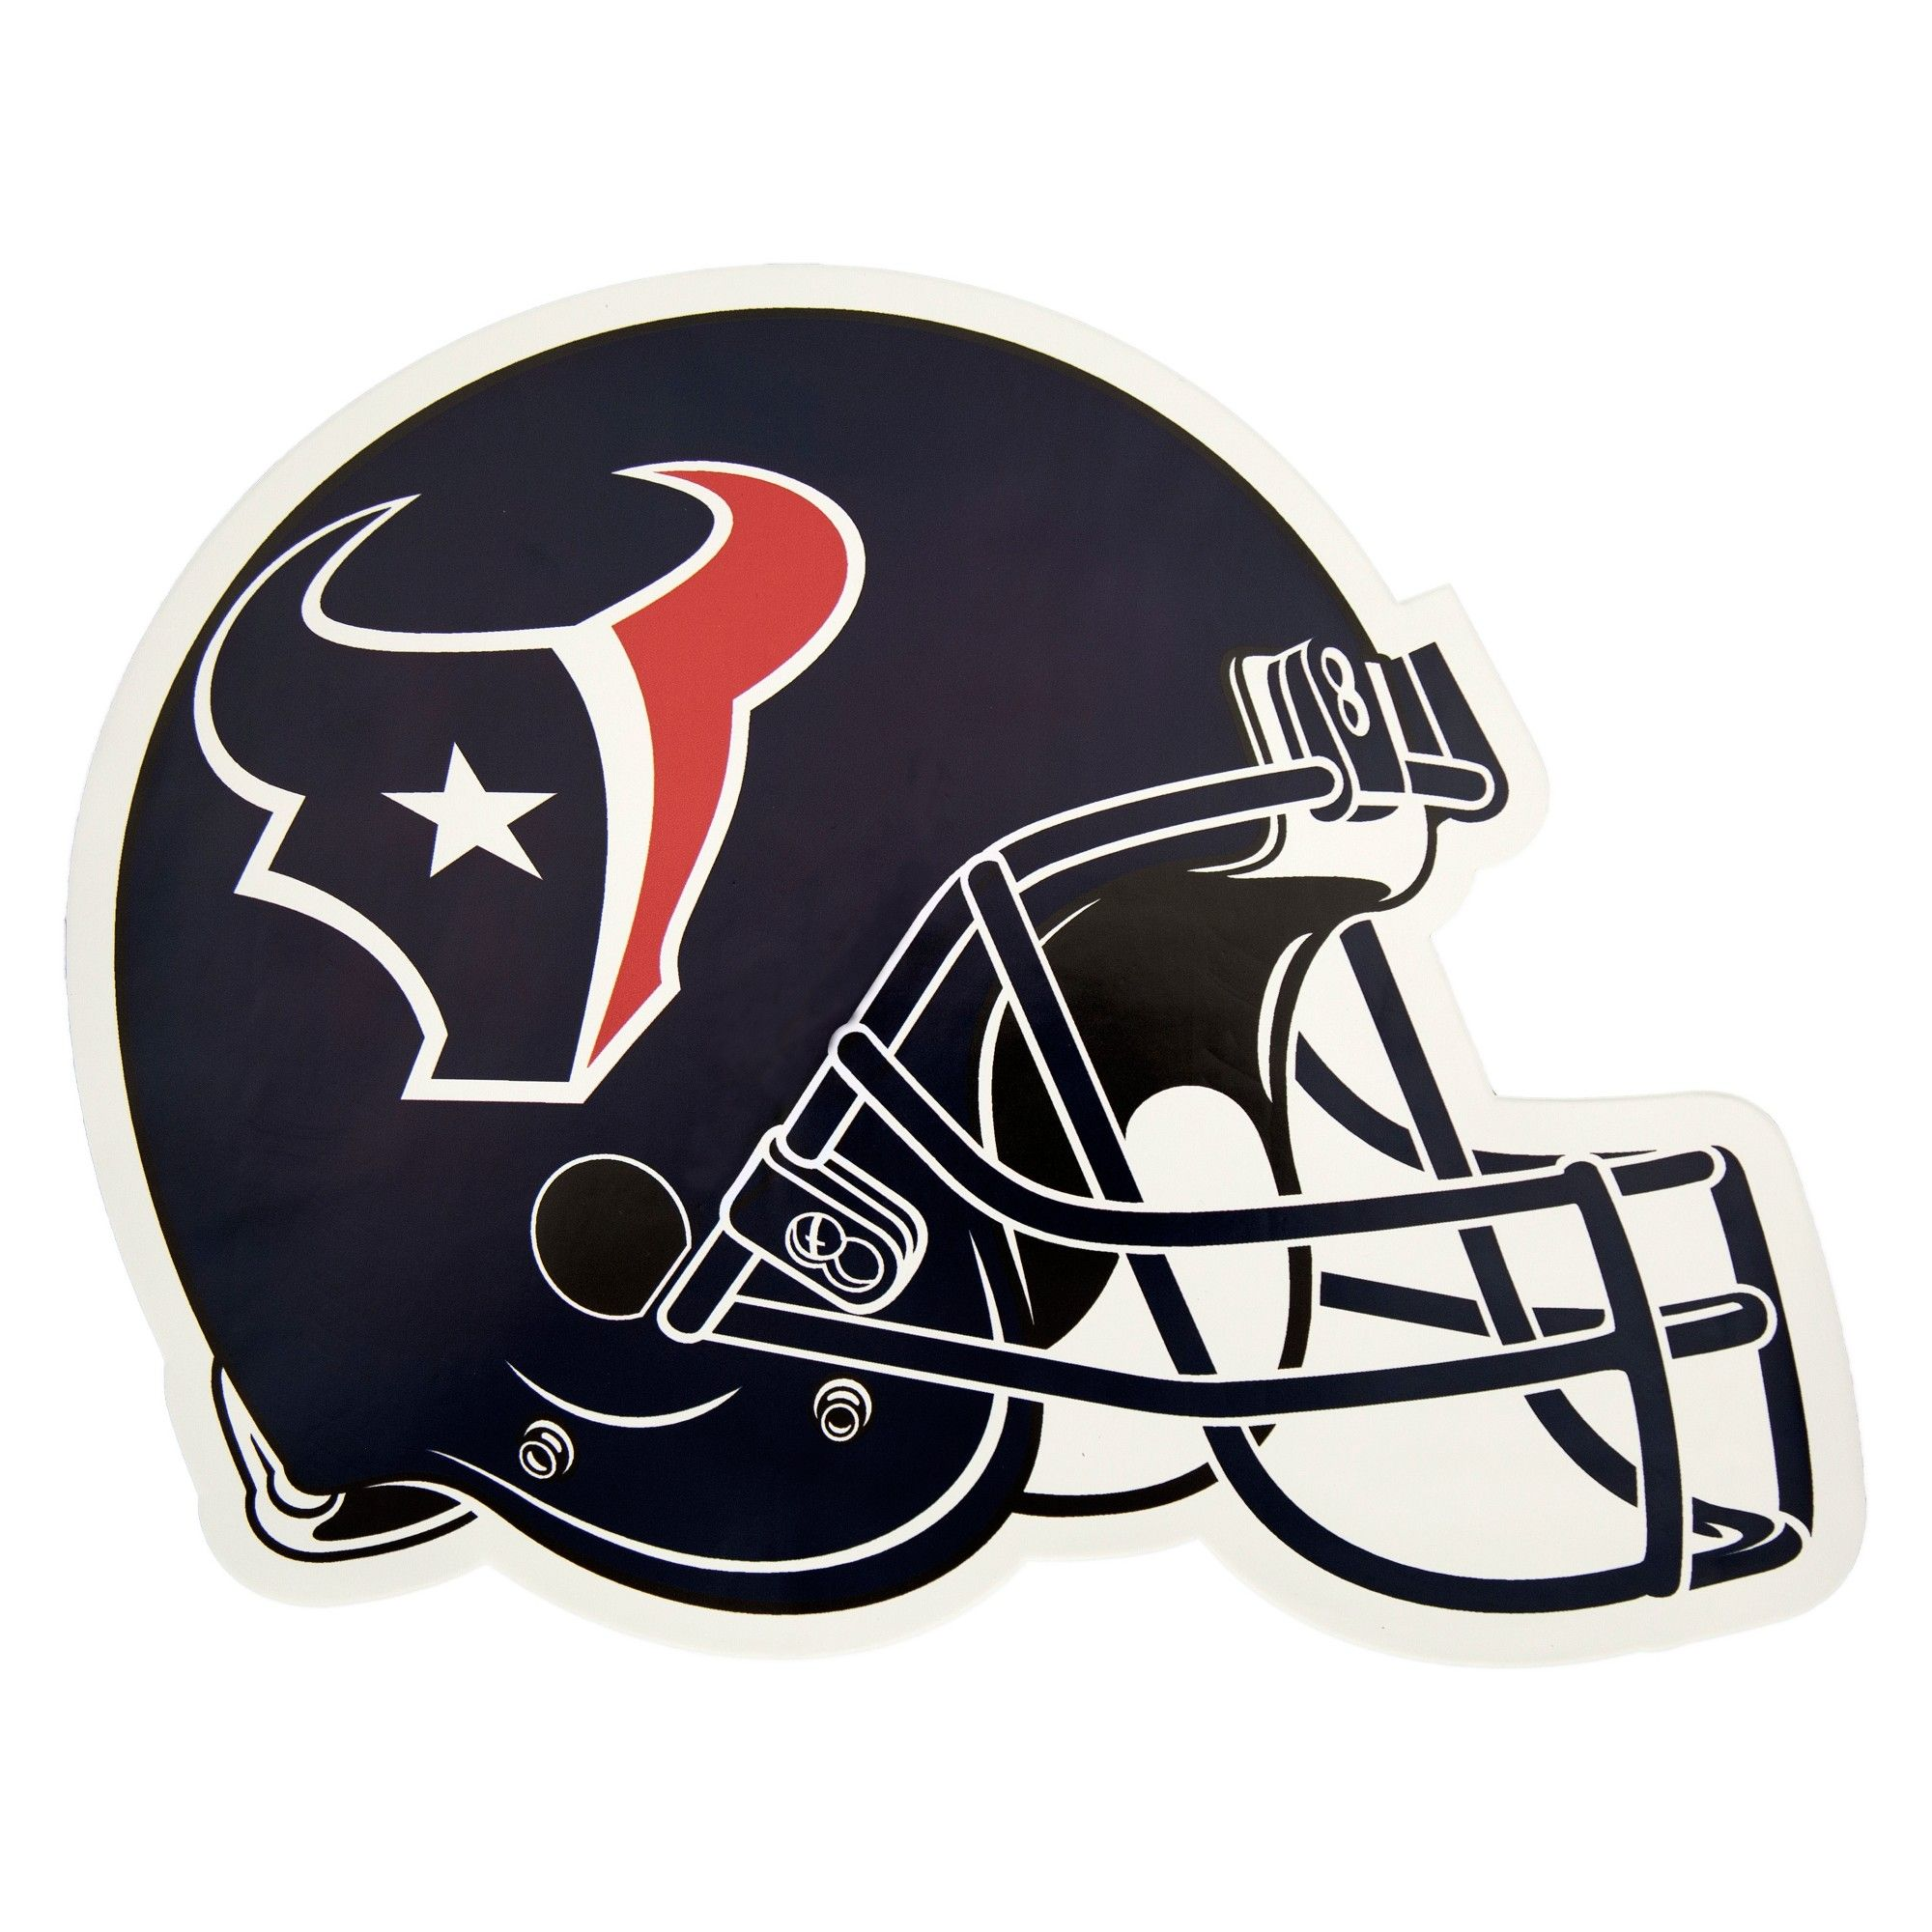 NFL Houston Texans Football Helmet Antenna Topper